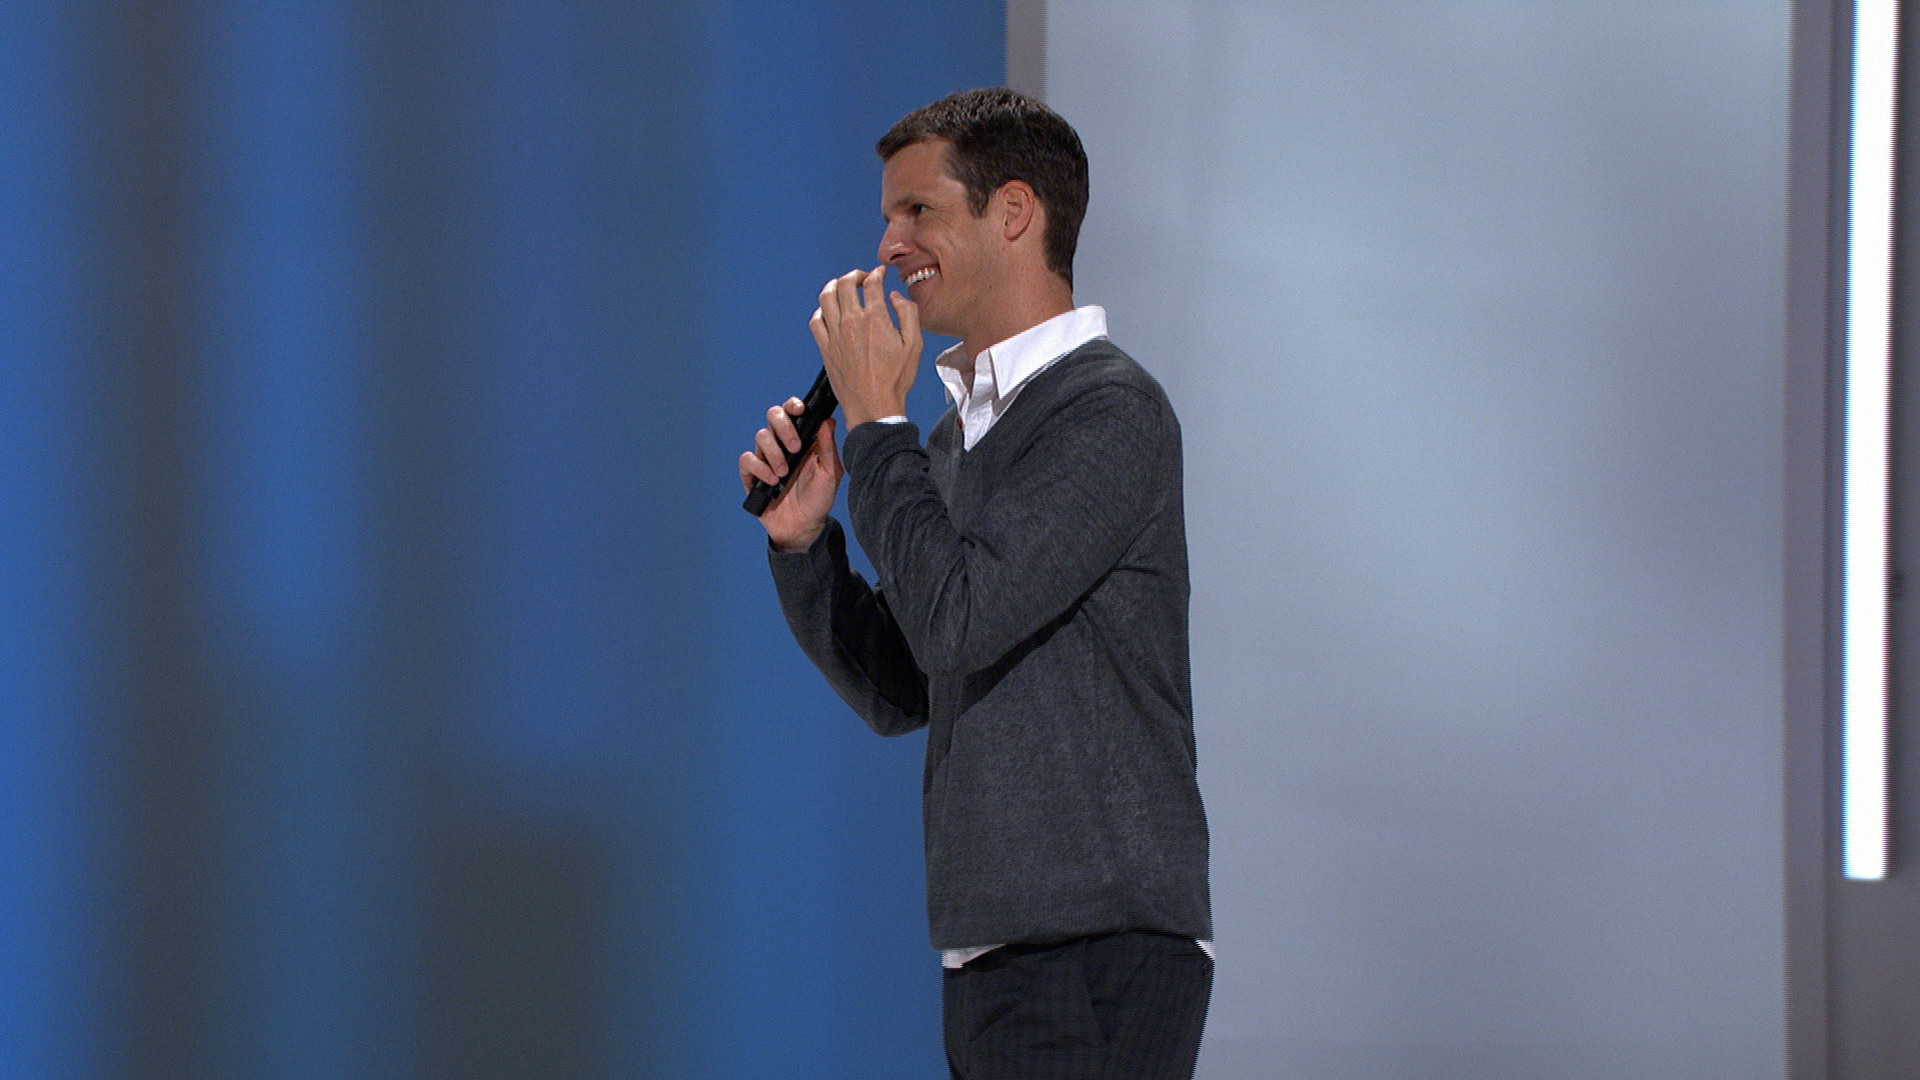 Daniel Tosh - Speed Bumps